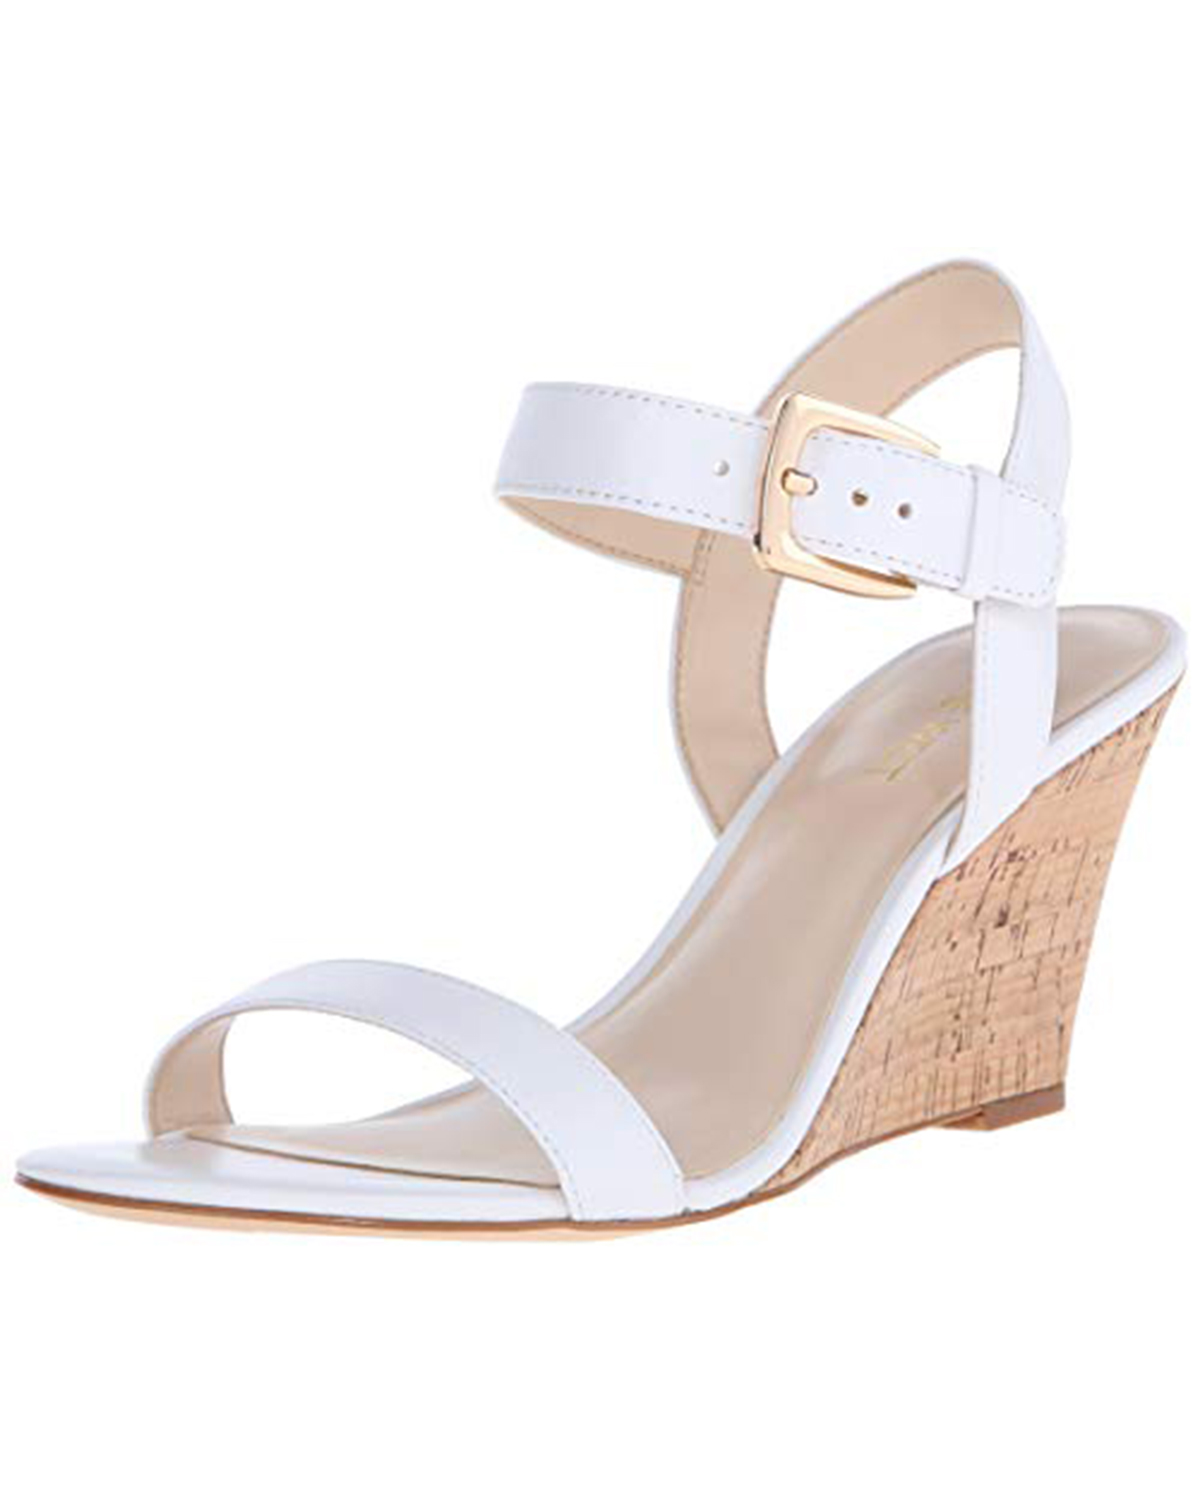 wedding wedges white leather with gold buckle